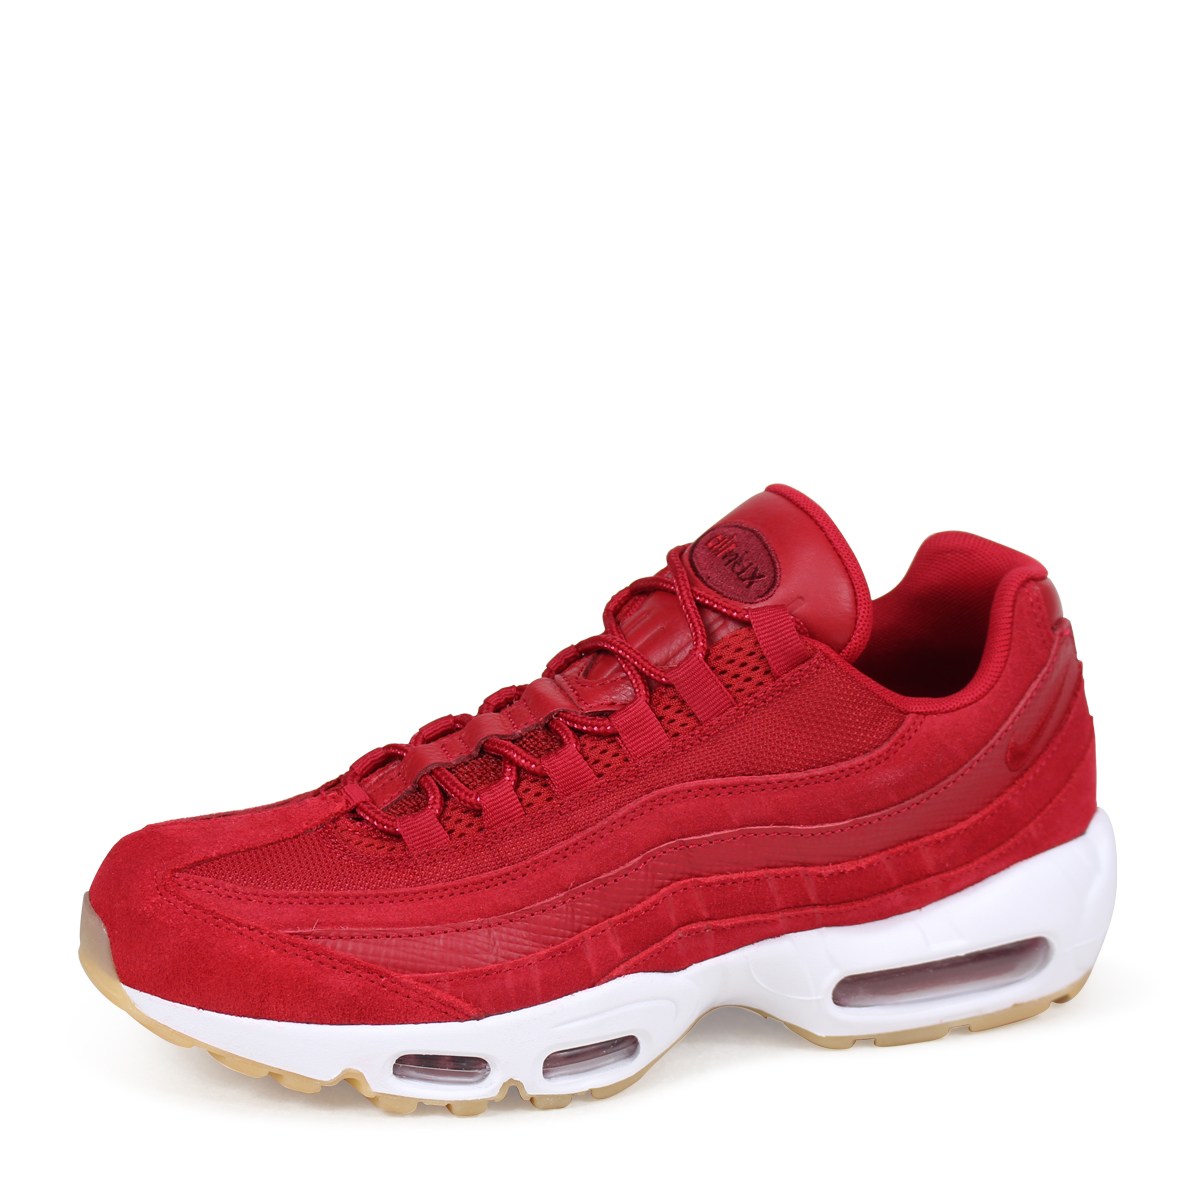 brand new 28c5f eaf9f NIKE AIR MAX 95 PREMIUM Kie Ney AMAX 95 sneakers men 538,416-602 red load  planned Shinnyu load in reservation product 512 containing 185